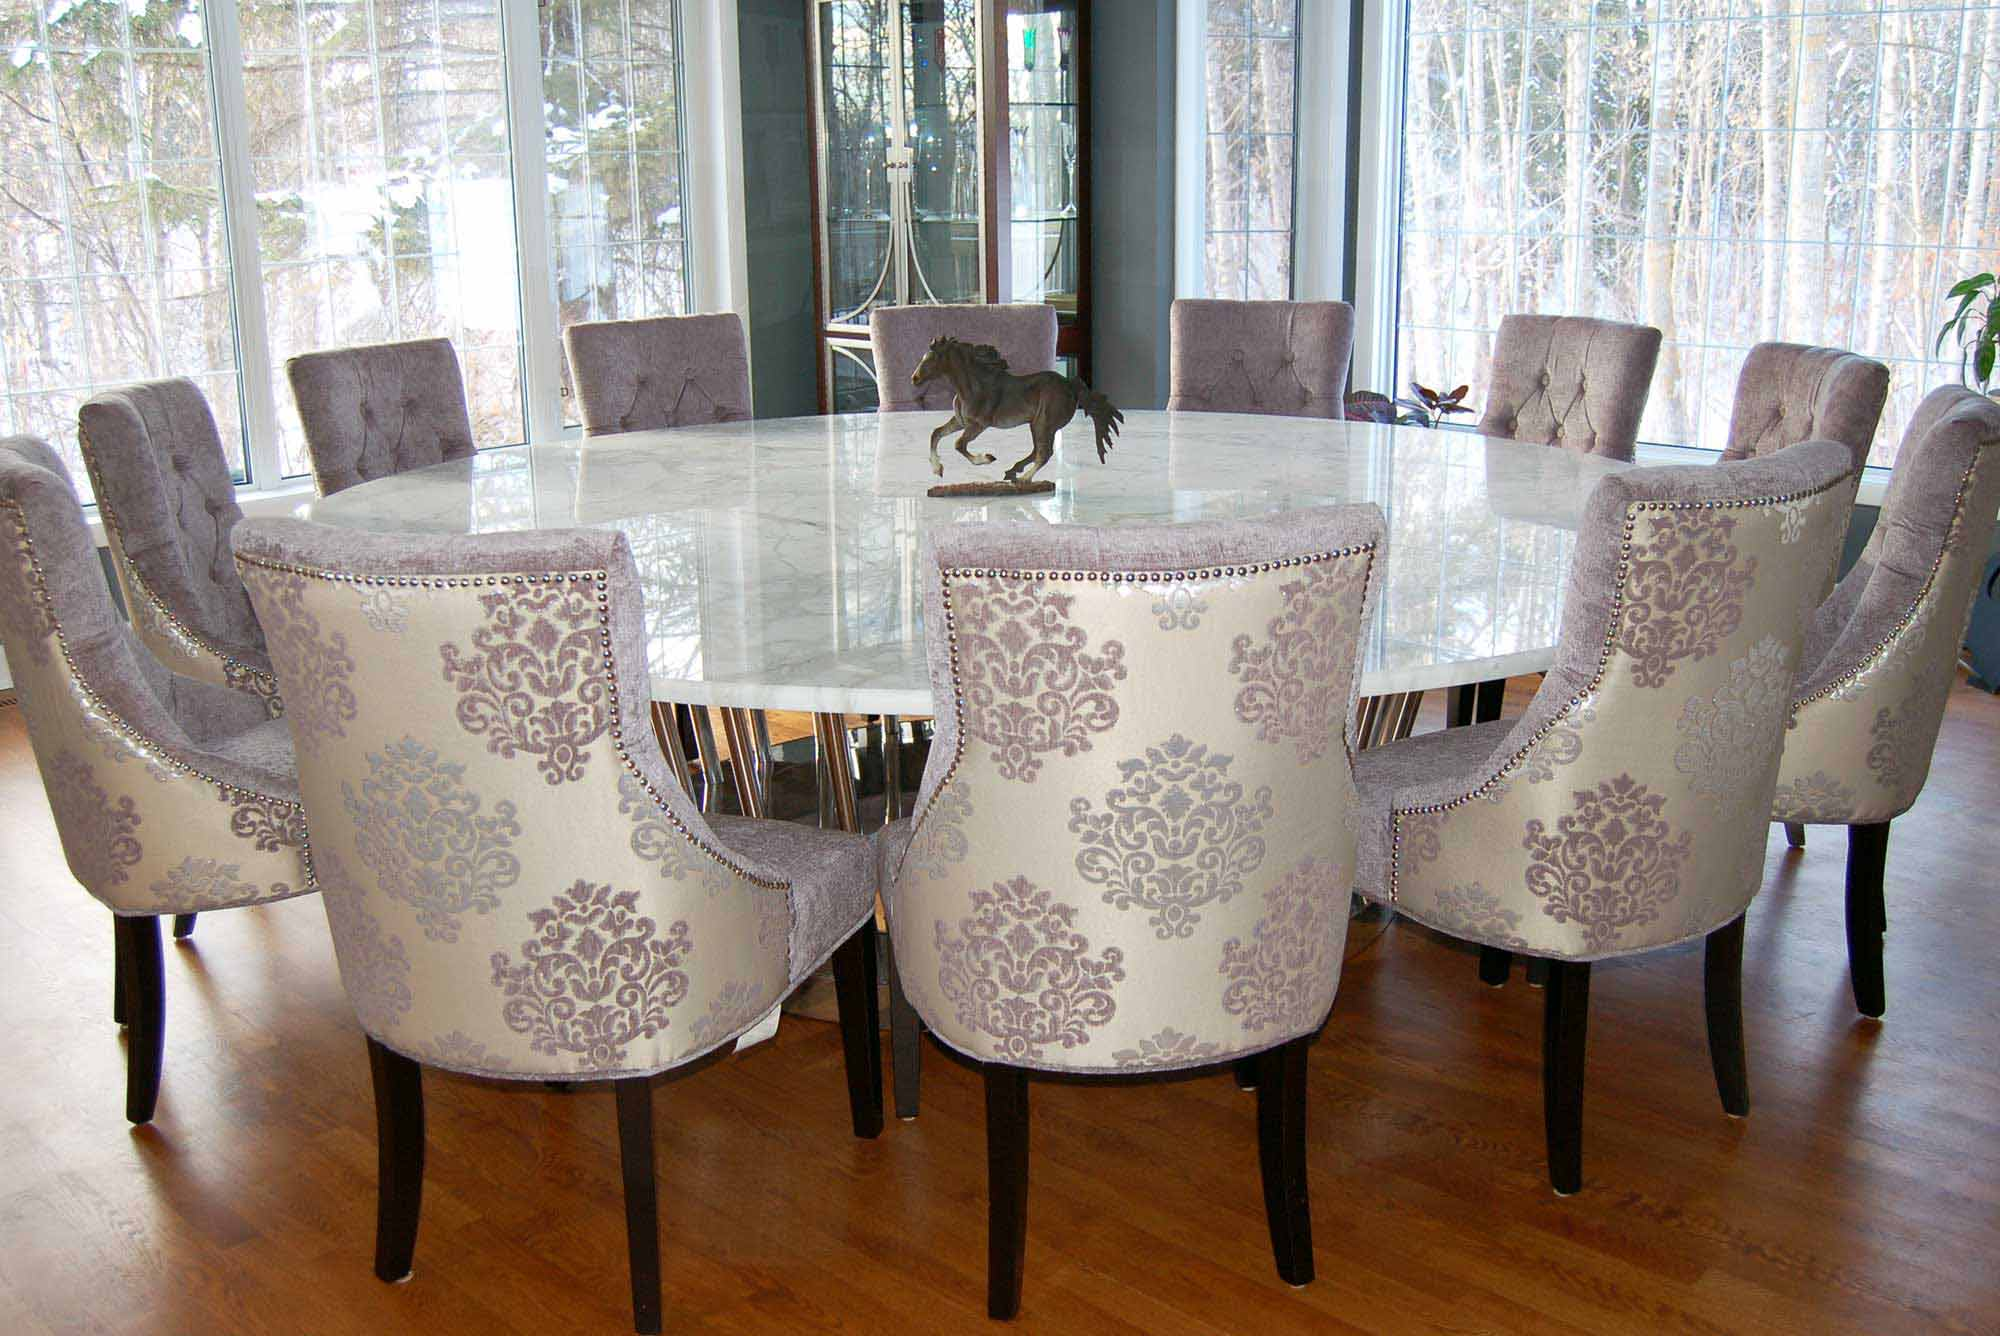 Dining Table | Danielle Tussman